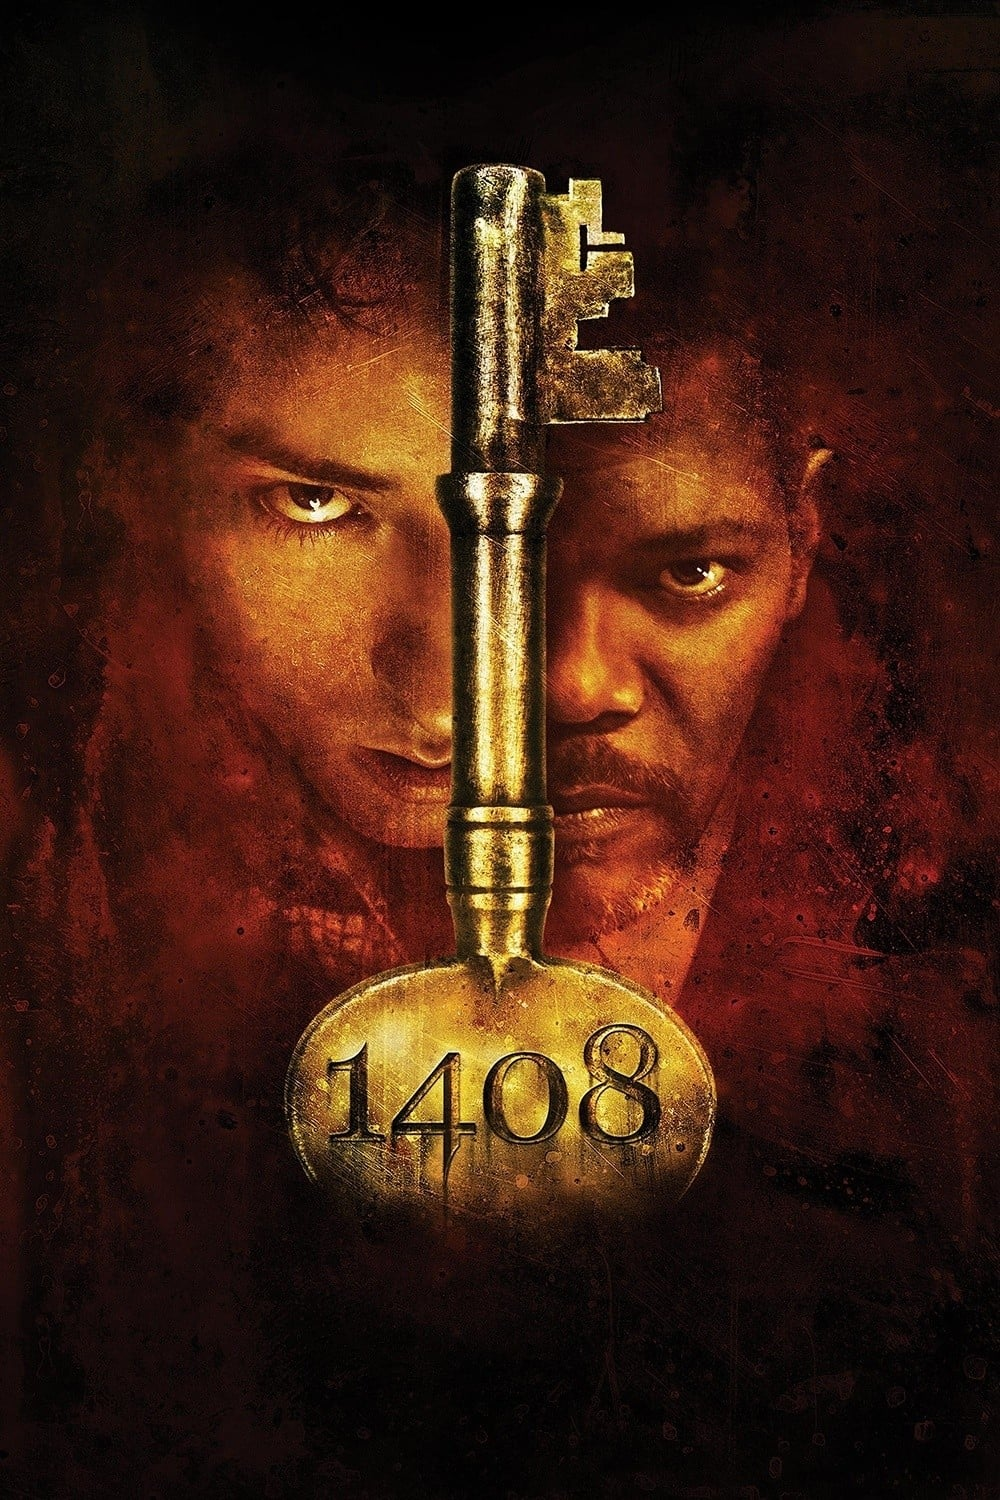 download or watch 1408 full movie online free openload